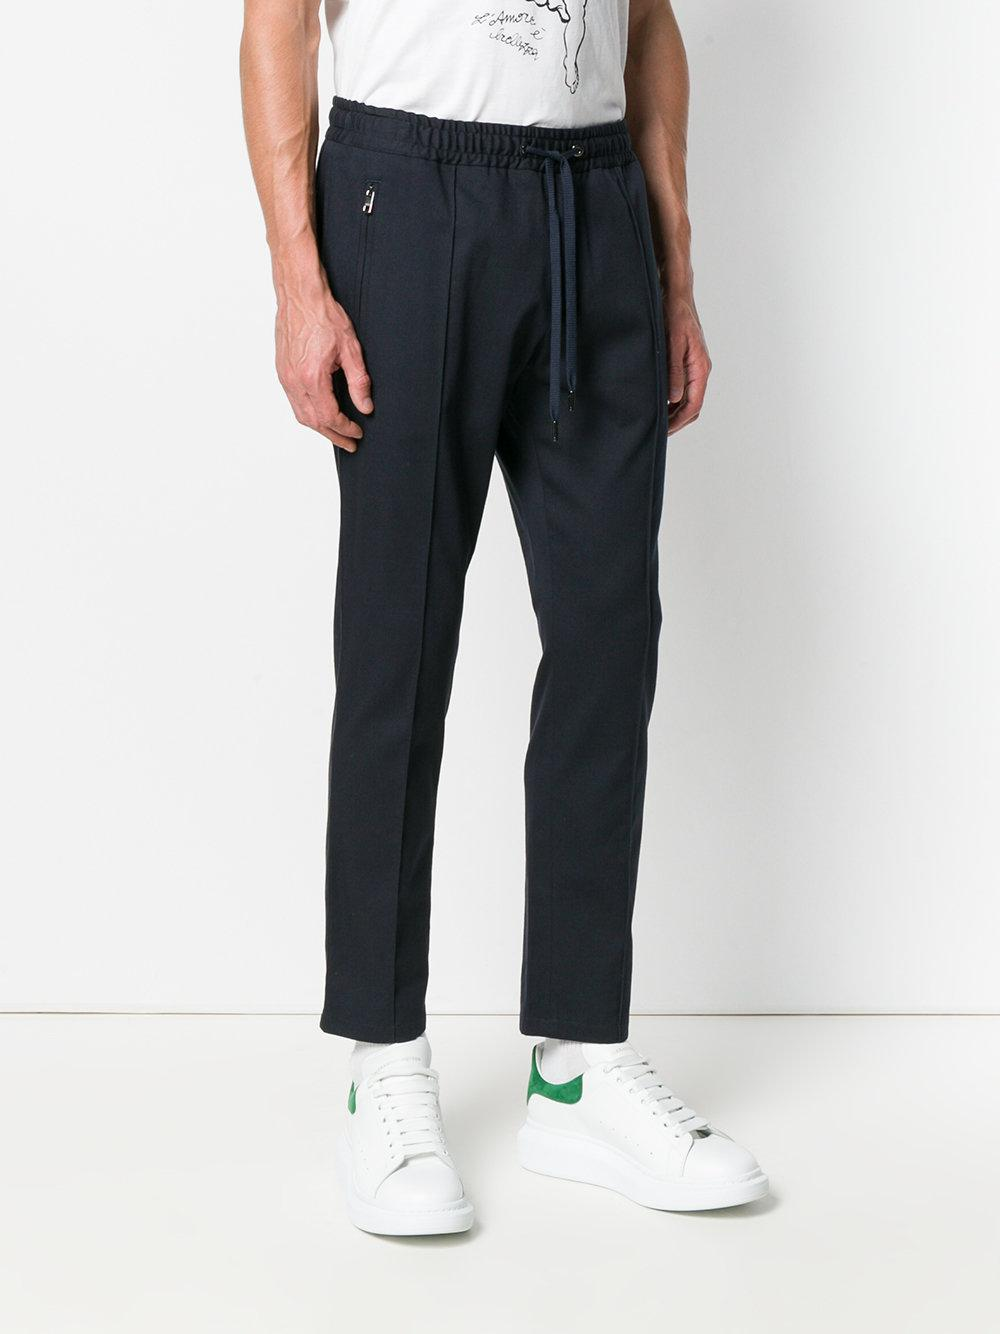 Dolce & Gabbana Cotton Fitted Track Trousers in Blue for Men